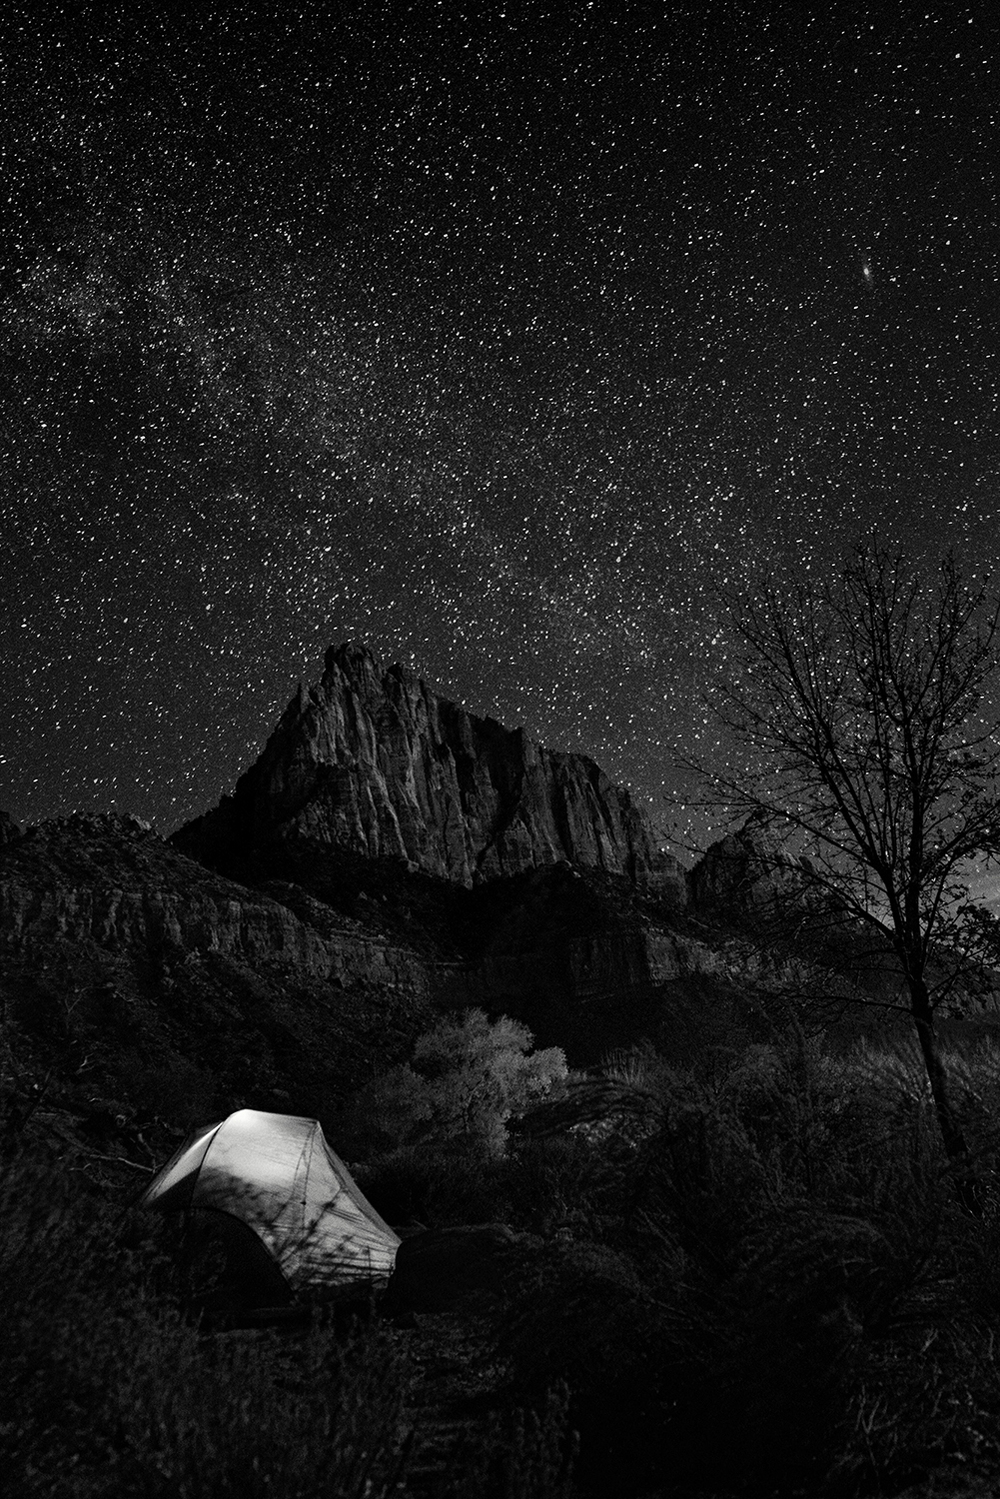 Taken on Thanksgiving night 2014, this is how I spent my holiday - alone under the stars.